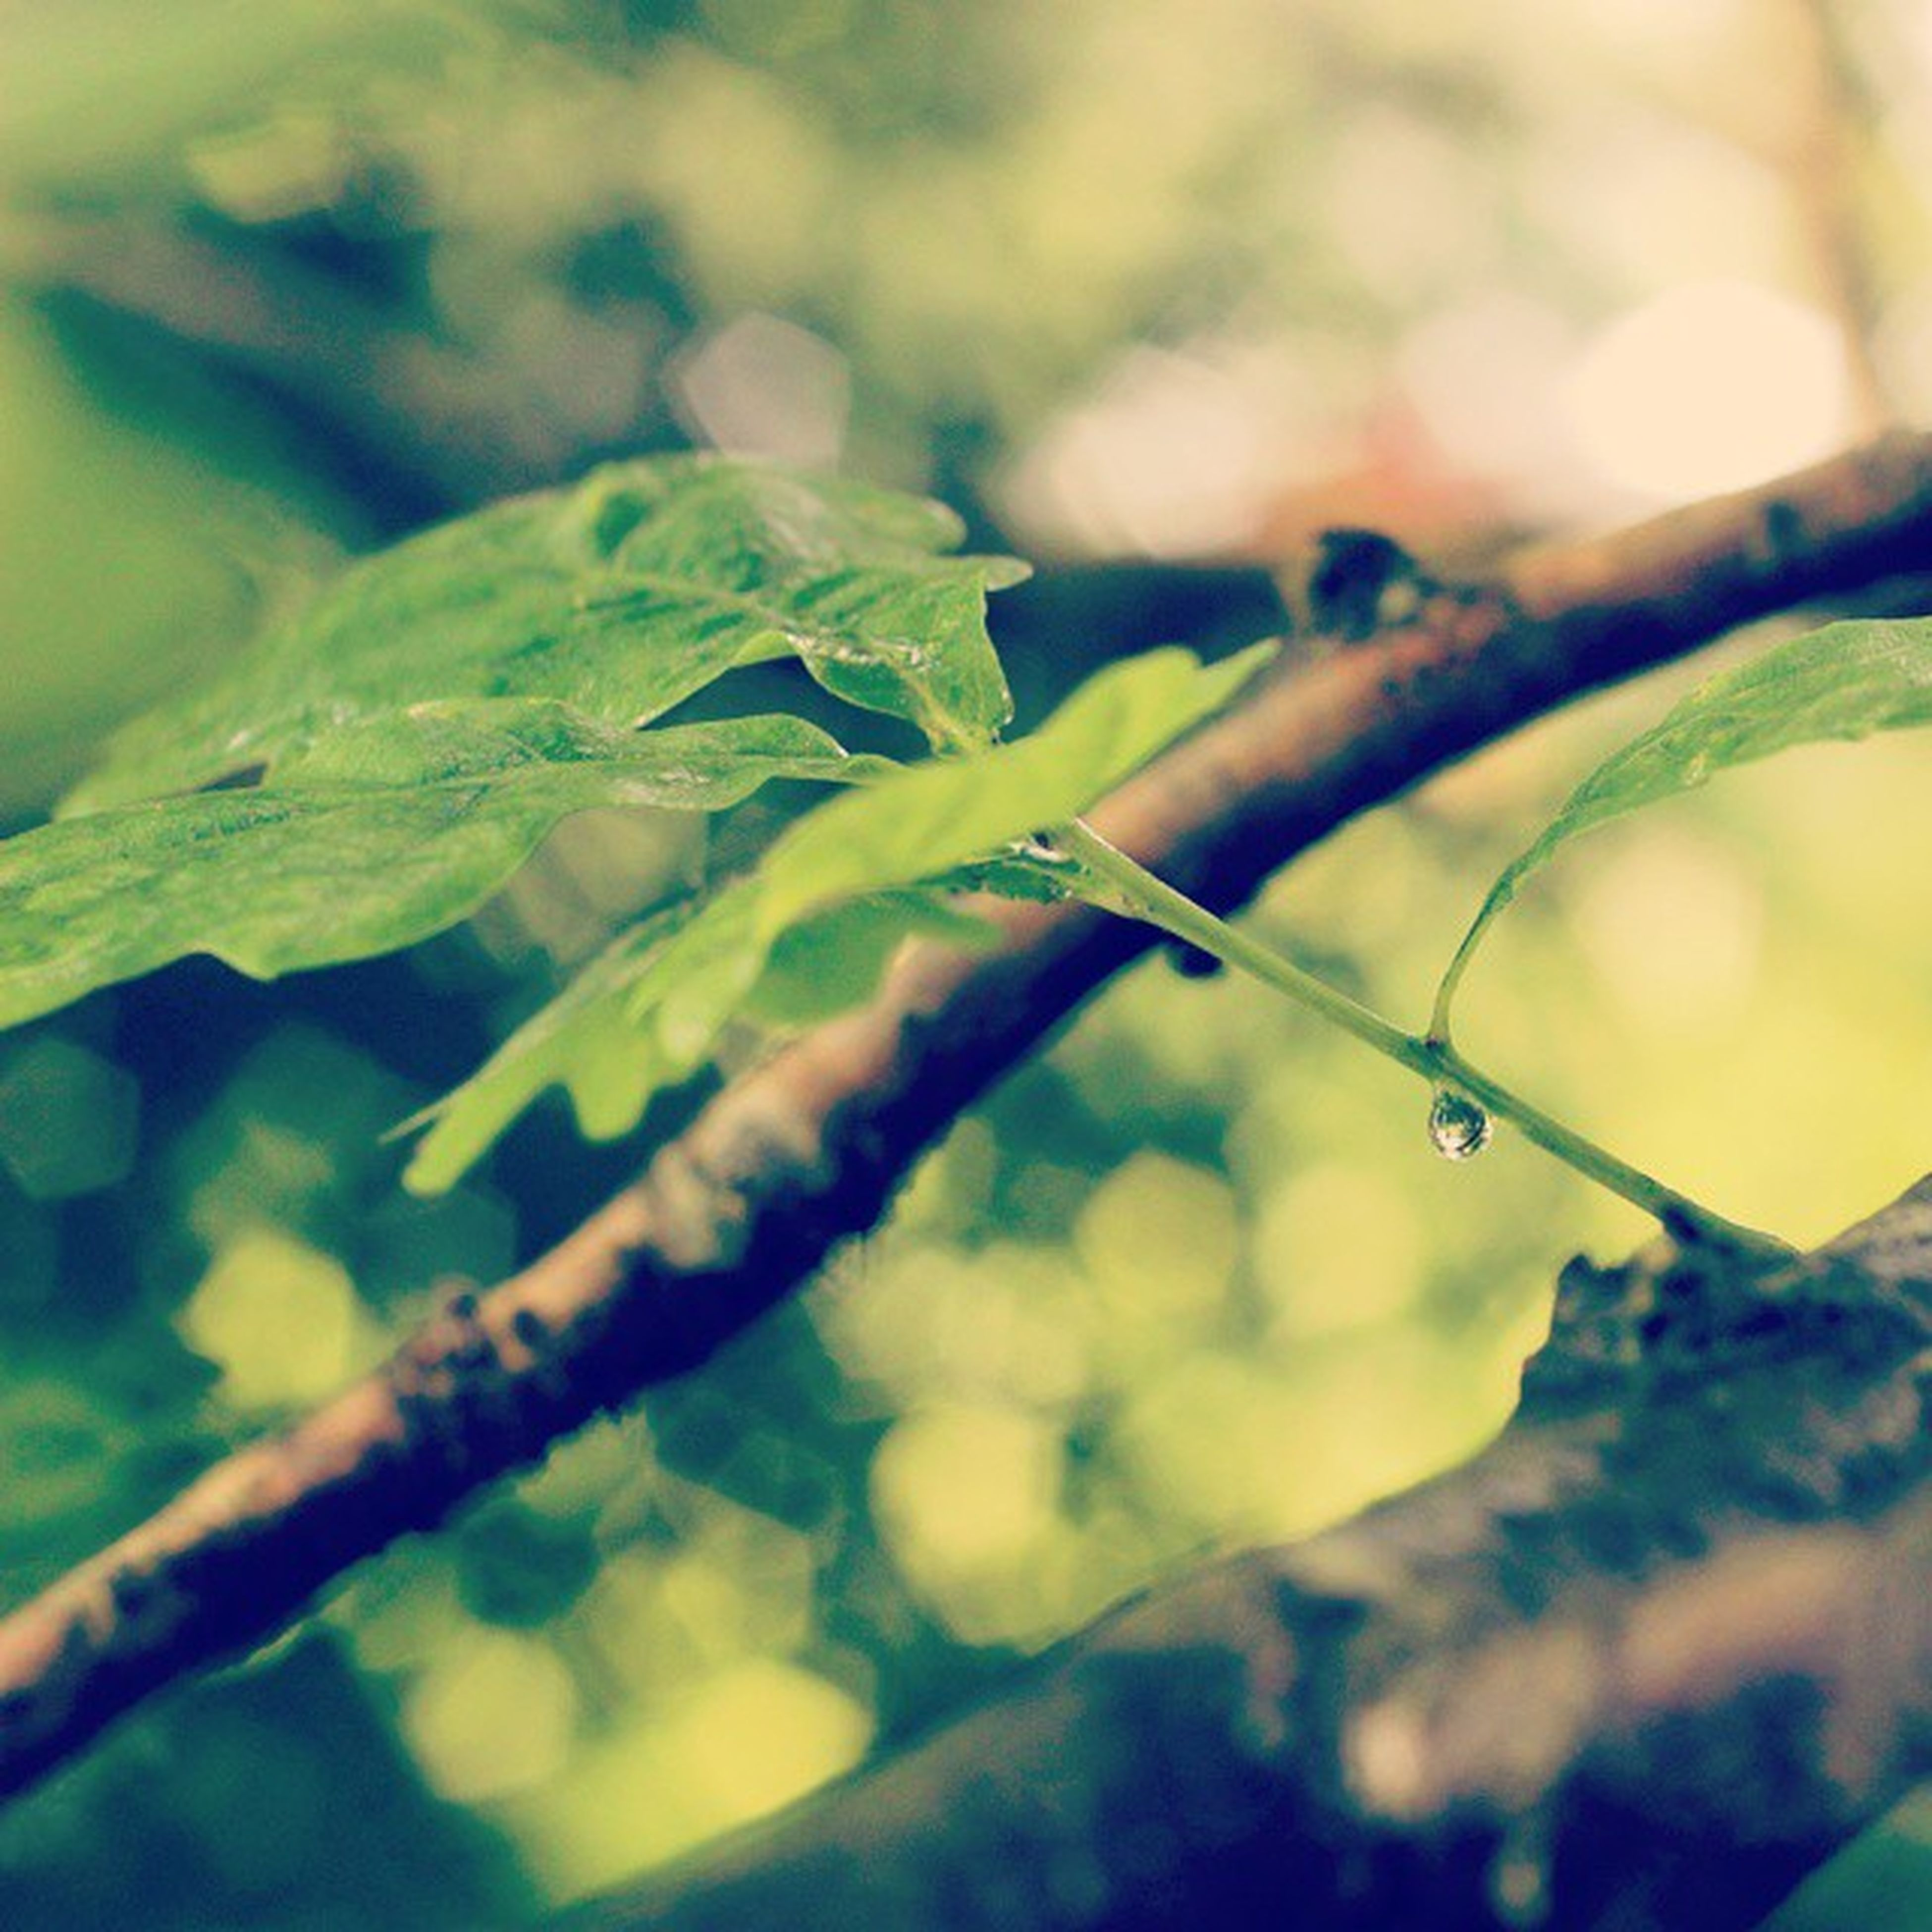 focus on foreground, close-up, leaf, growth, selective focus, green color, branch, nature, twig, plant, water, beauty in nature, tranquility, day, drop, outdoors, wet, no people, stem, tree